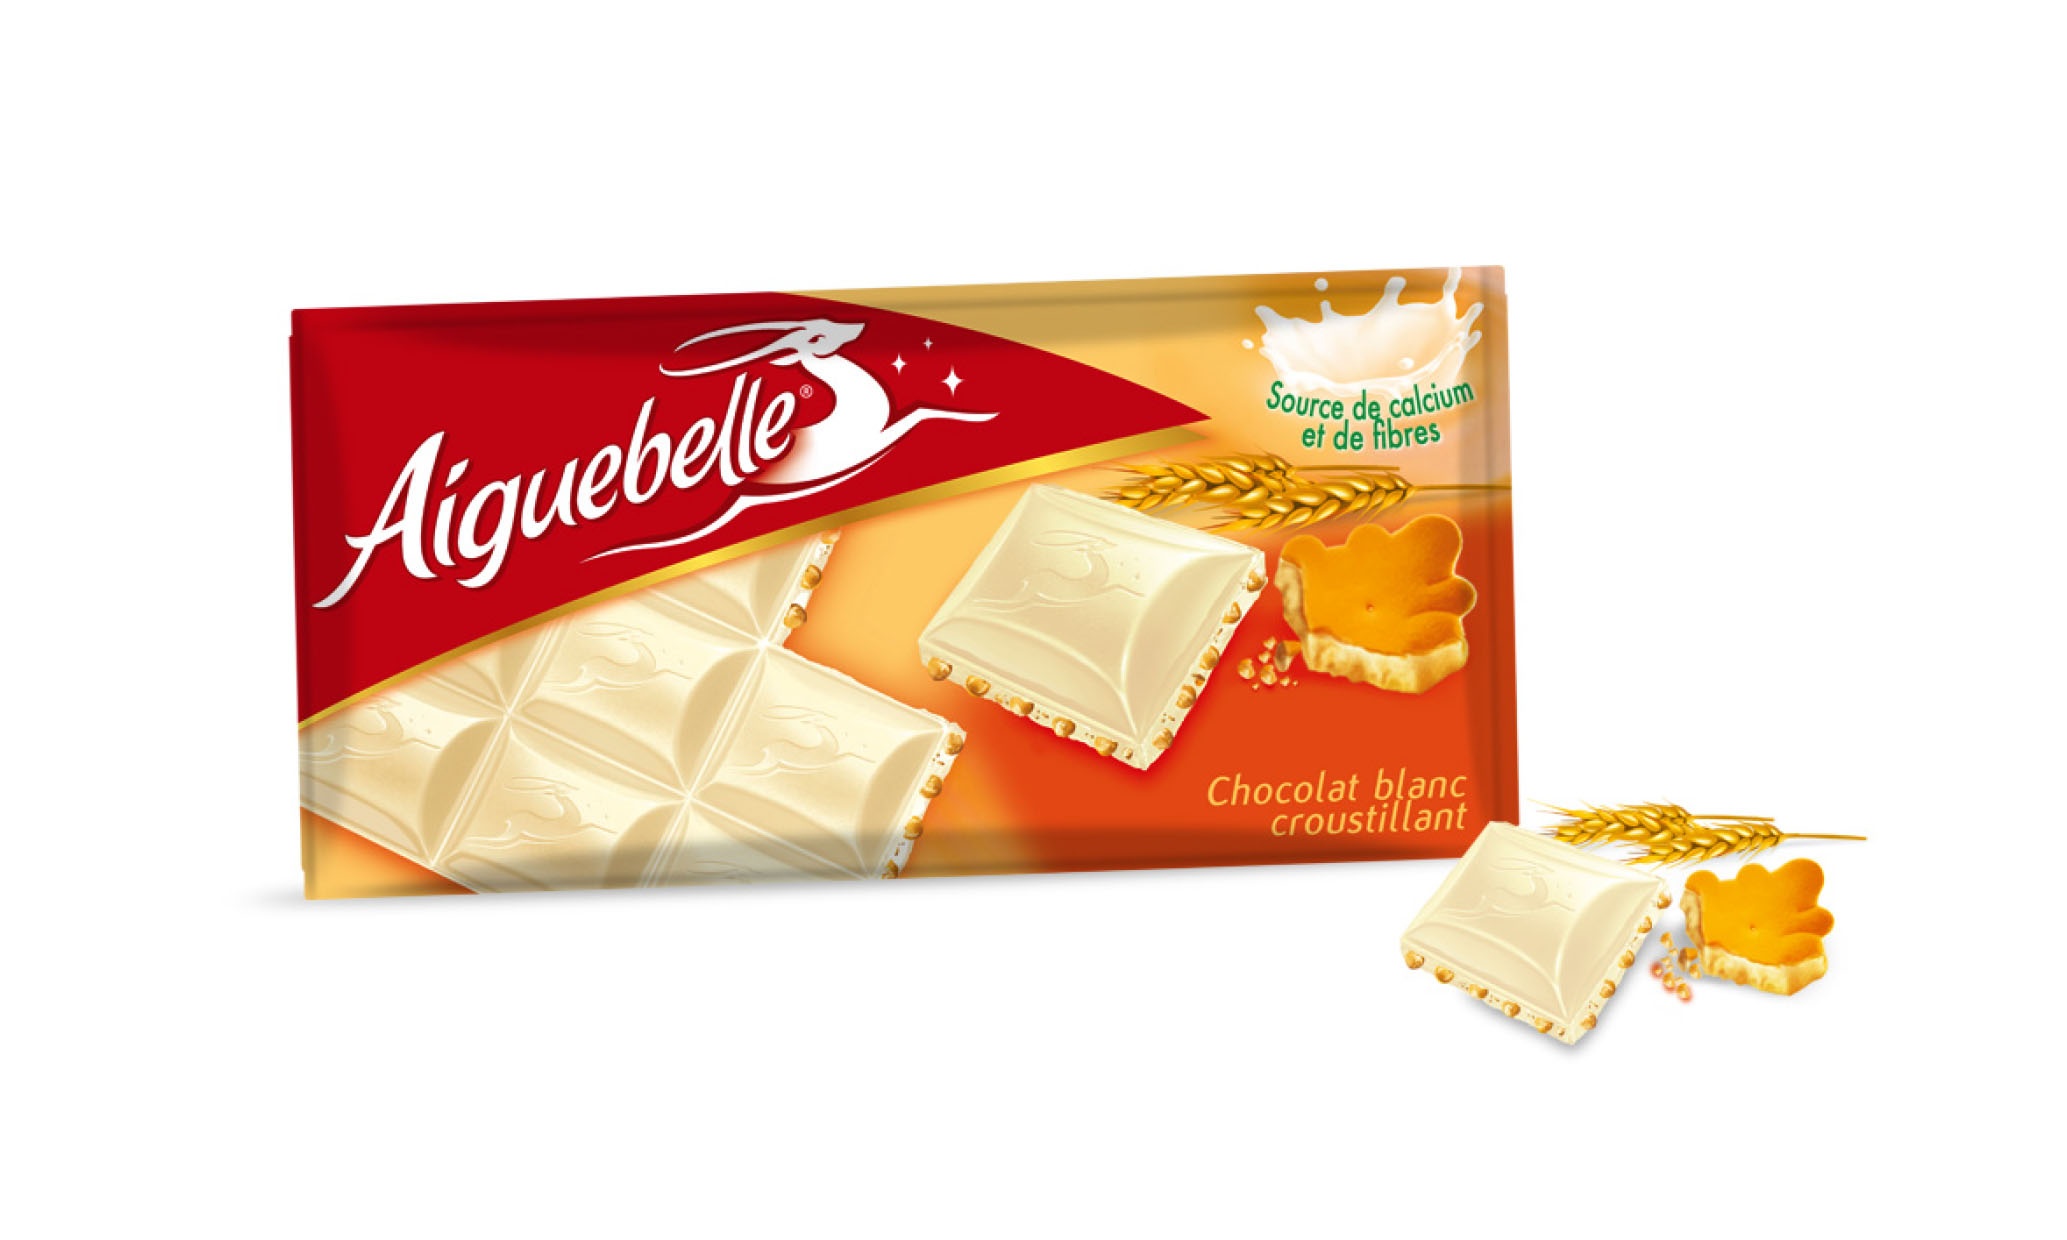 Packaging chocolat blanc croustillant Aiguebelle